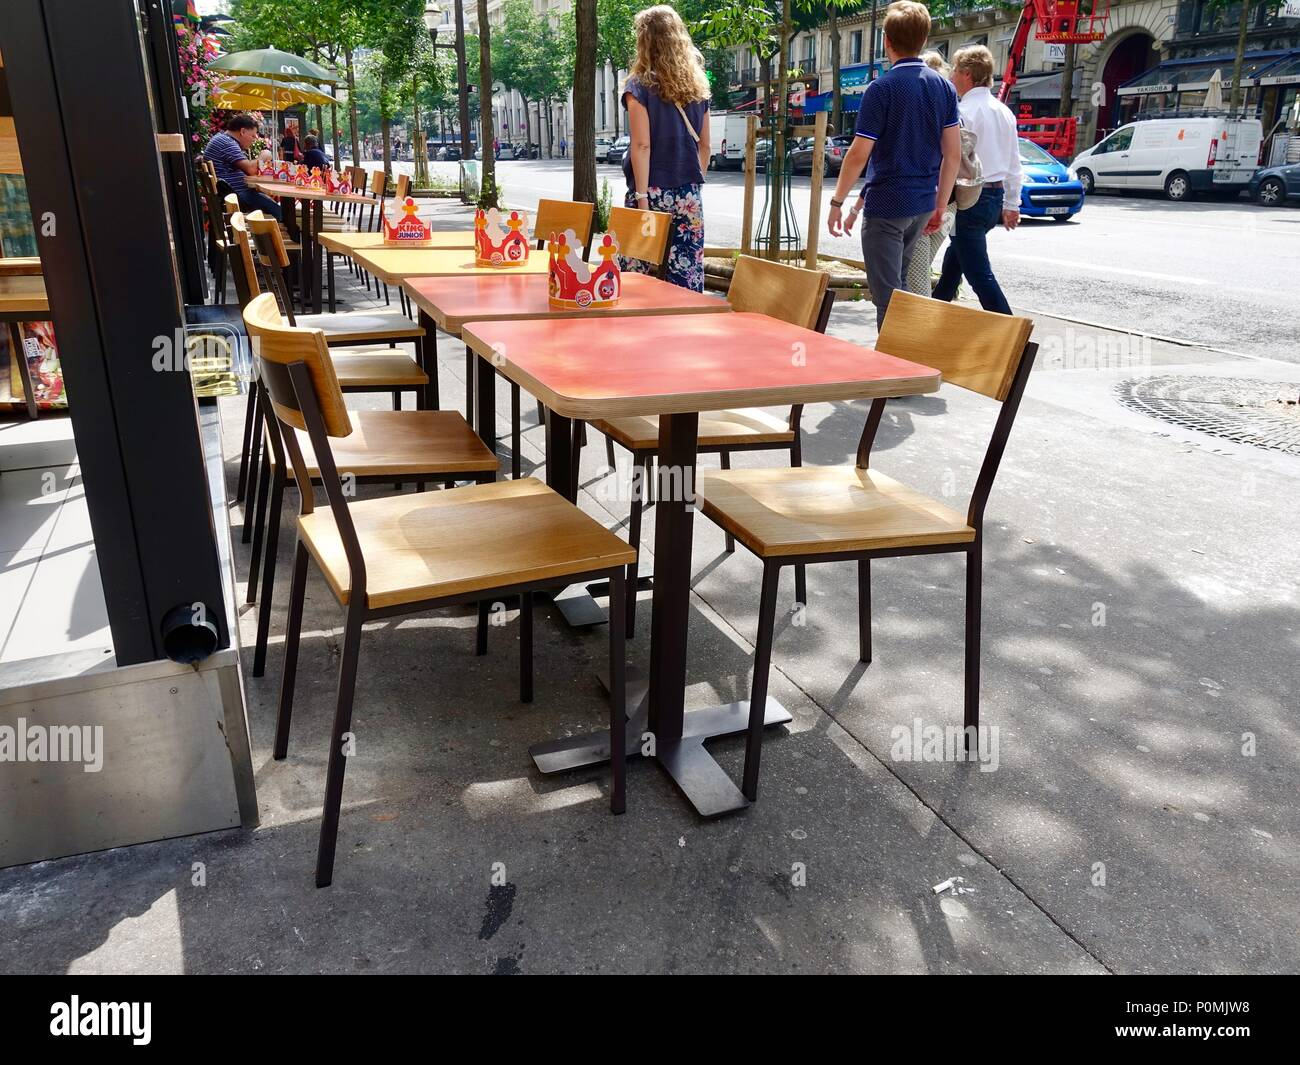 Tables, with Burger King crowns, and chairs set up outside a fast food restaurant, Paris, France - Stock Image